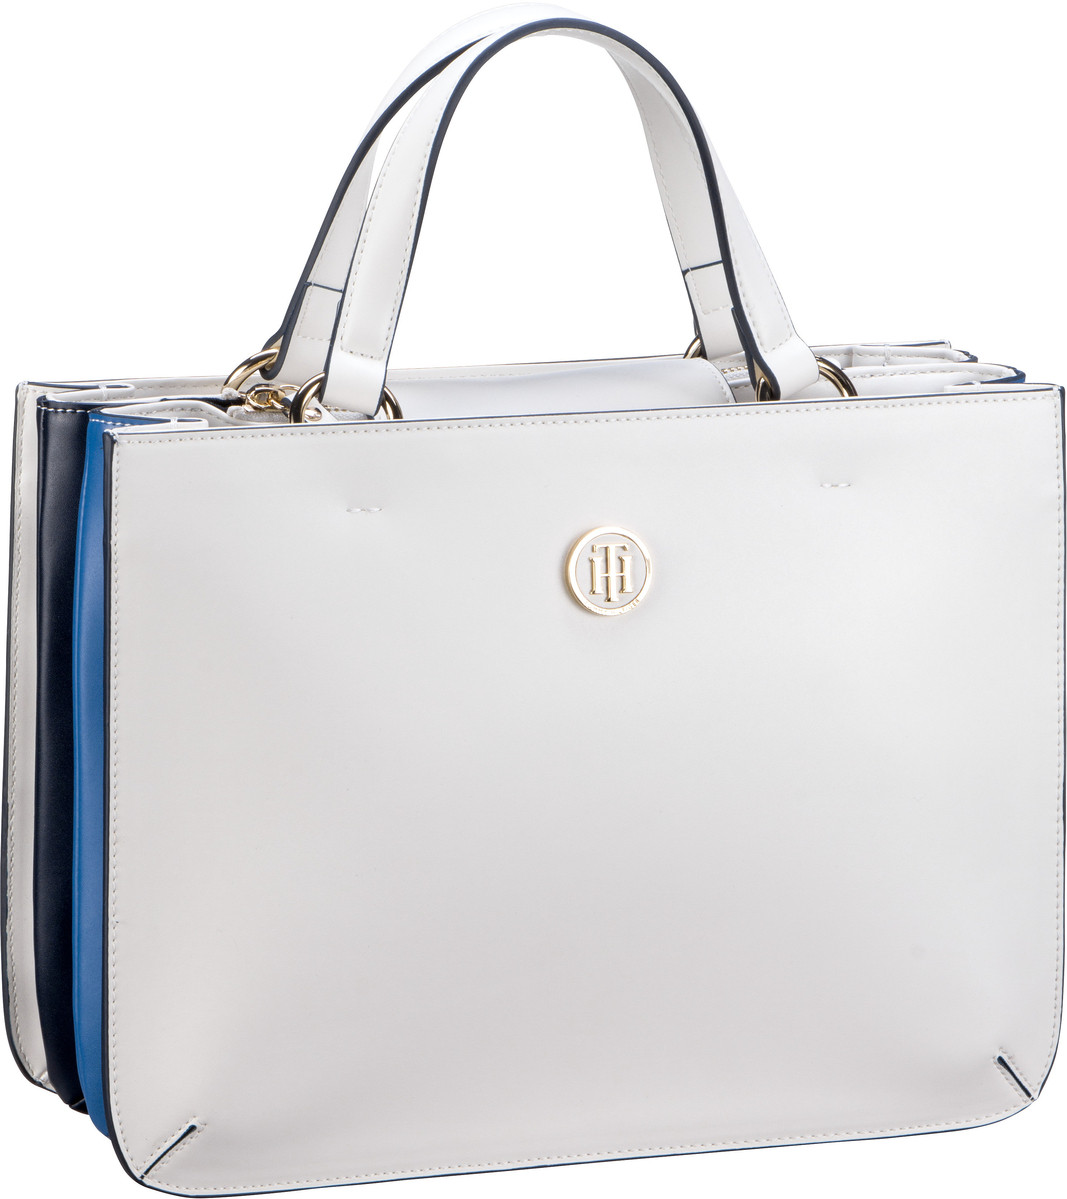 Handtasche Youthful Heritage Satchel 4971 Bright White